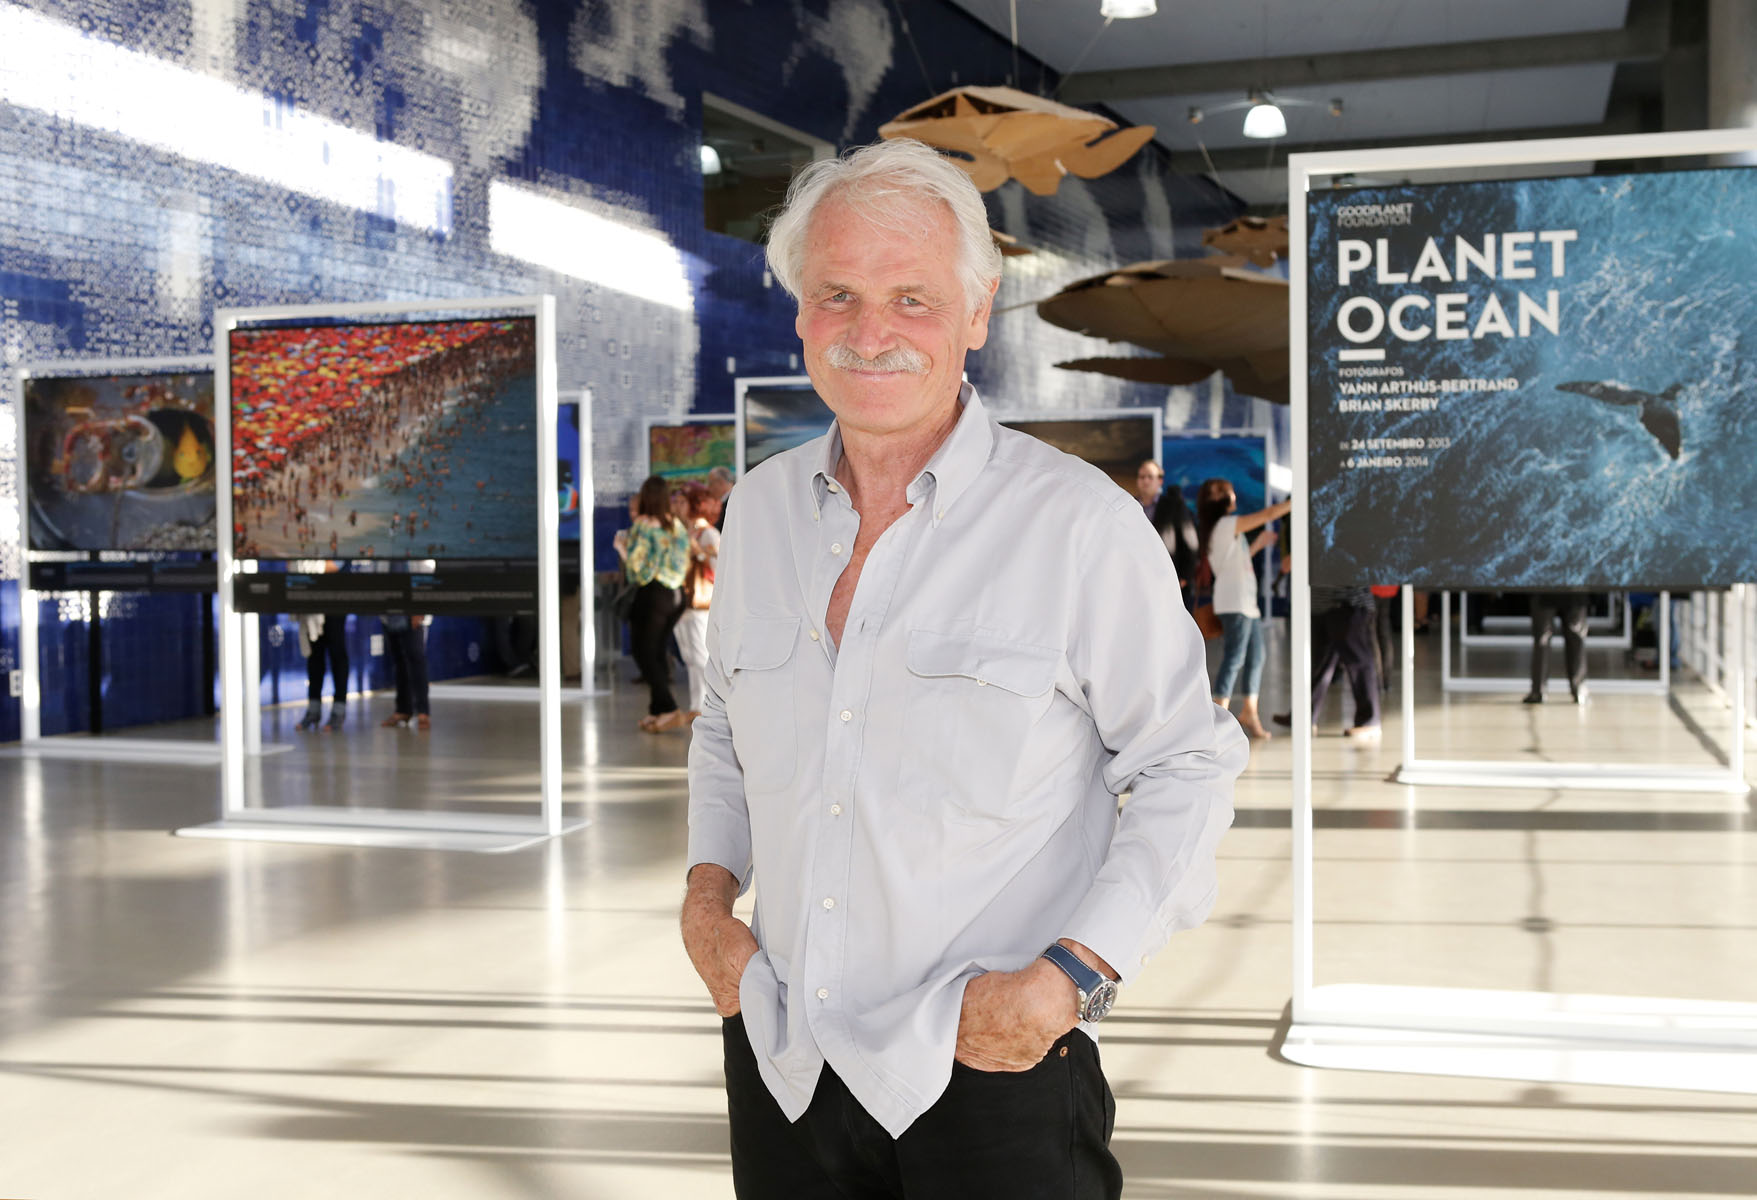 Yann Arthus Bertrand during his exhibition at Good Planet Foundation